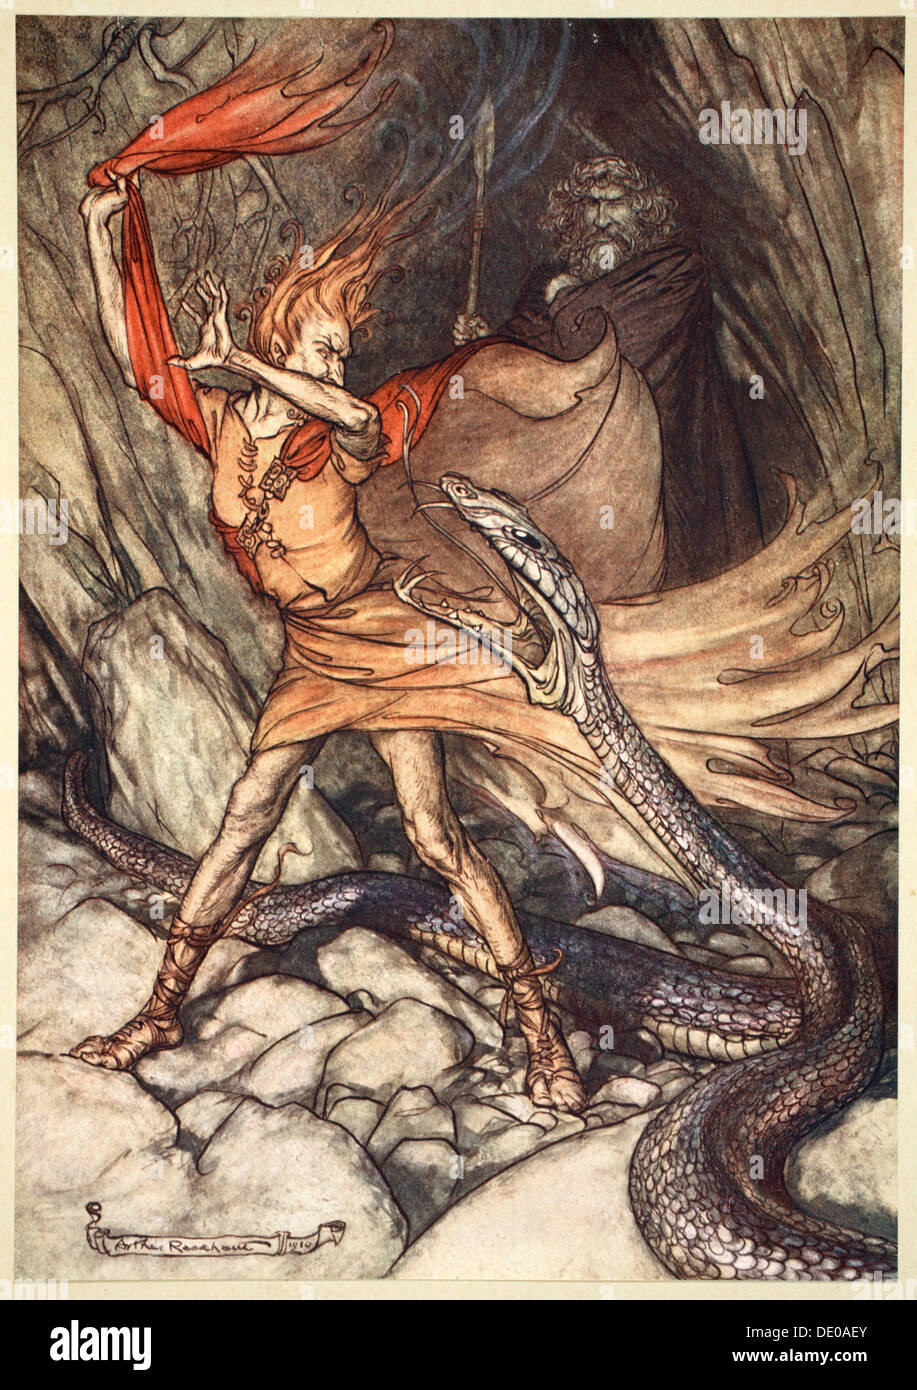 'Ohe! Ohe! Horrible dragon, O swallow me not! Spare the life of poor Loge!', 1910.  Artist: Arthur Rackham - Stock Image